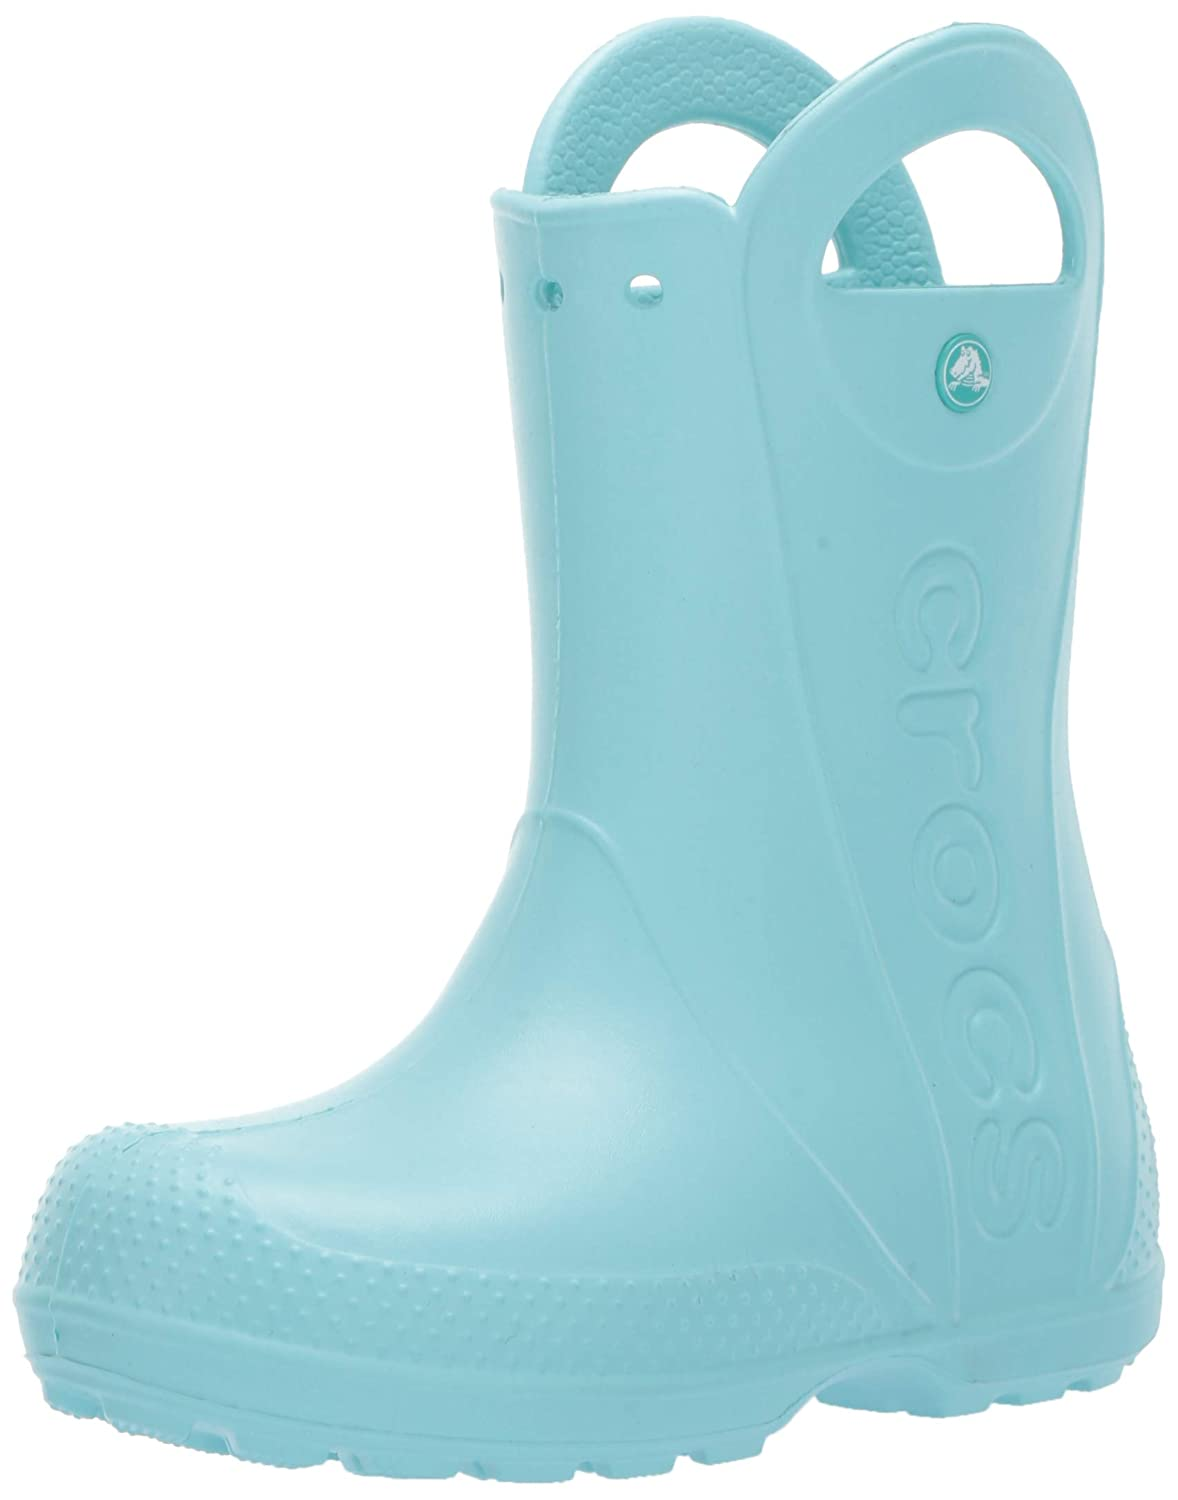 Crocs Kids' Handle-it Rain Boot Shoe Ice Blue 13 M US Little Kid 12803